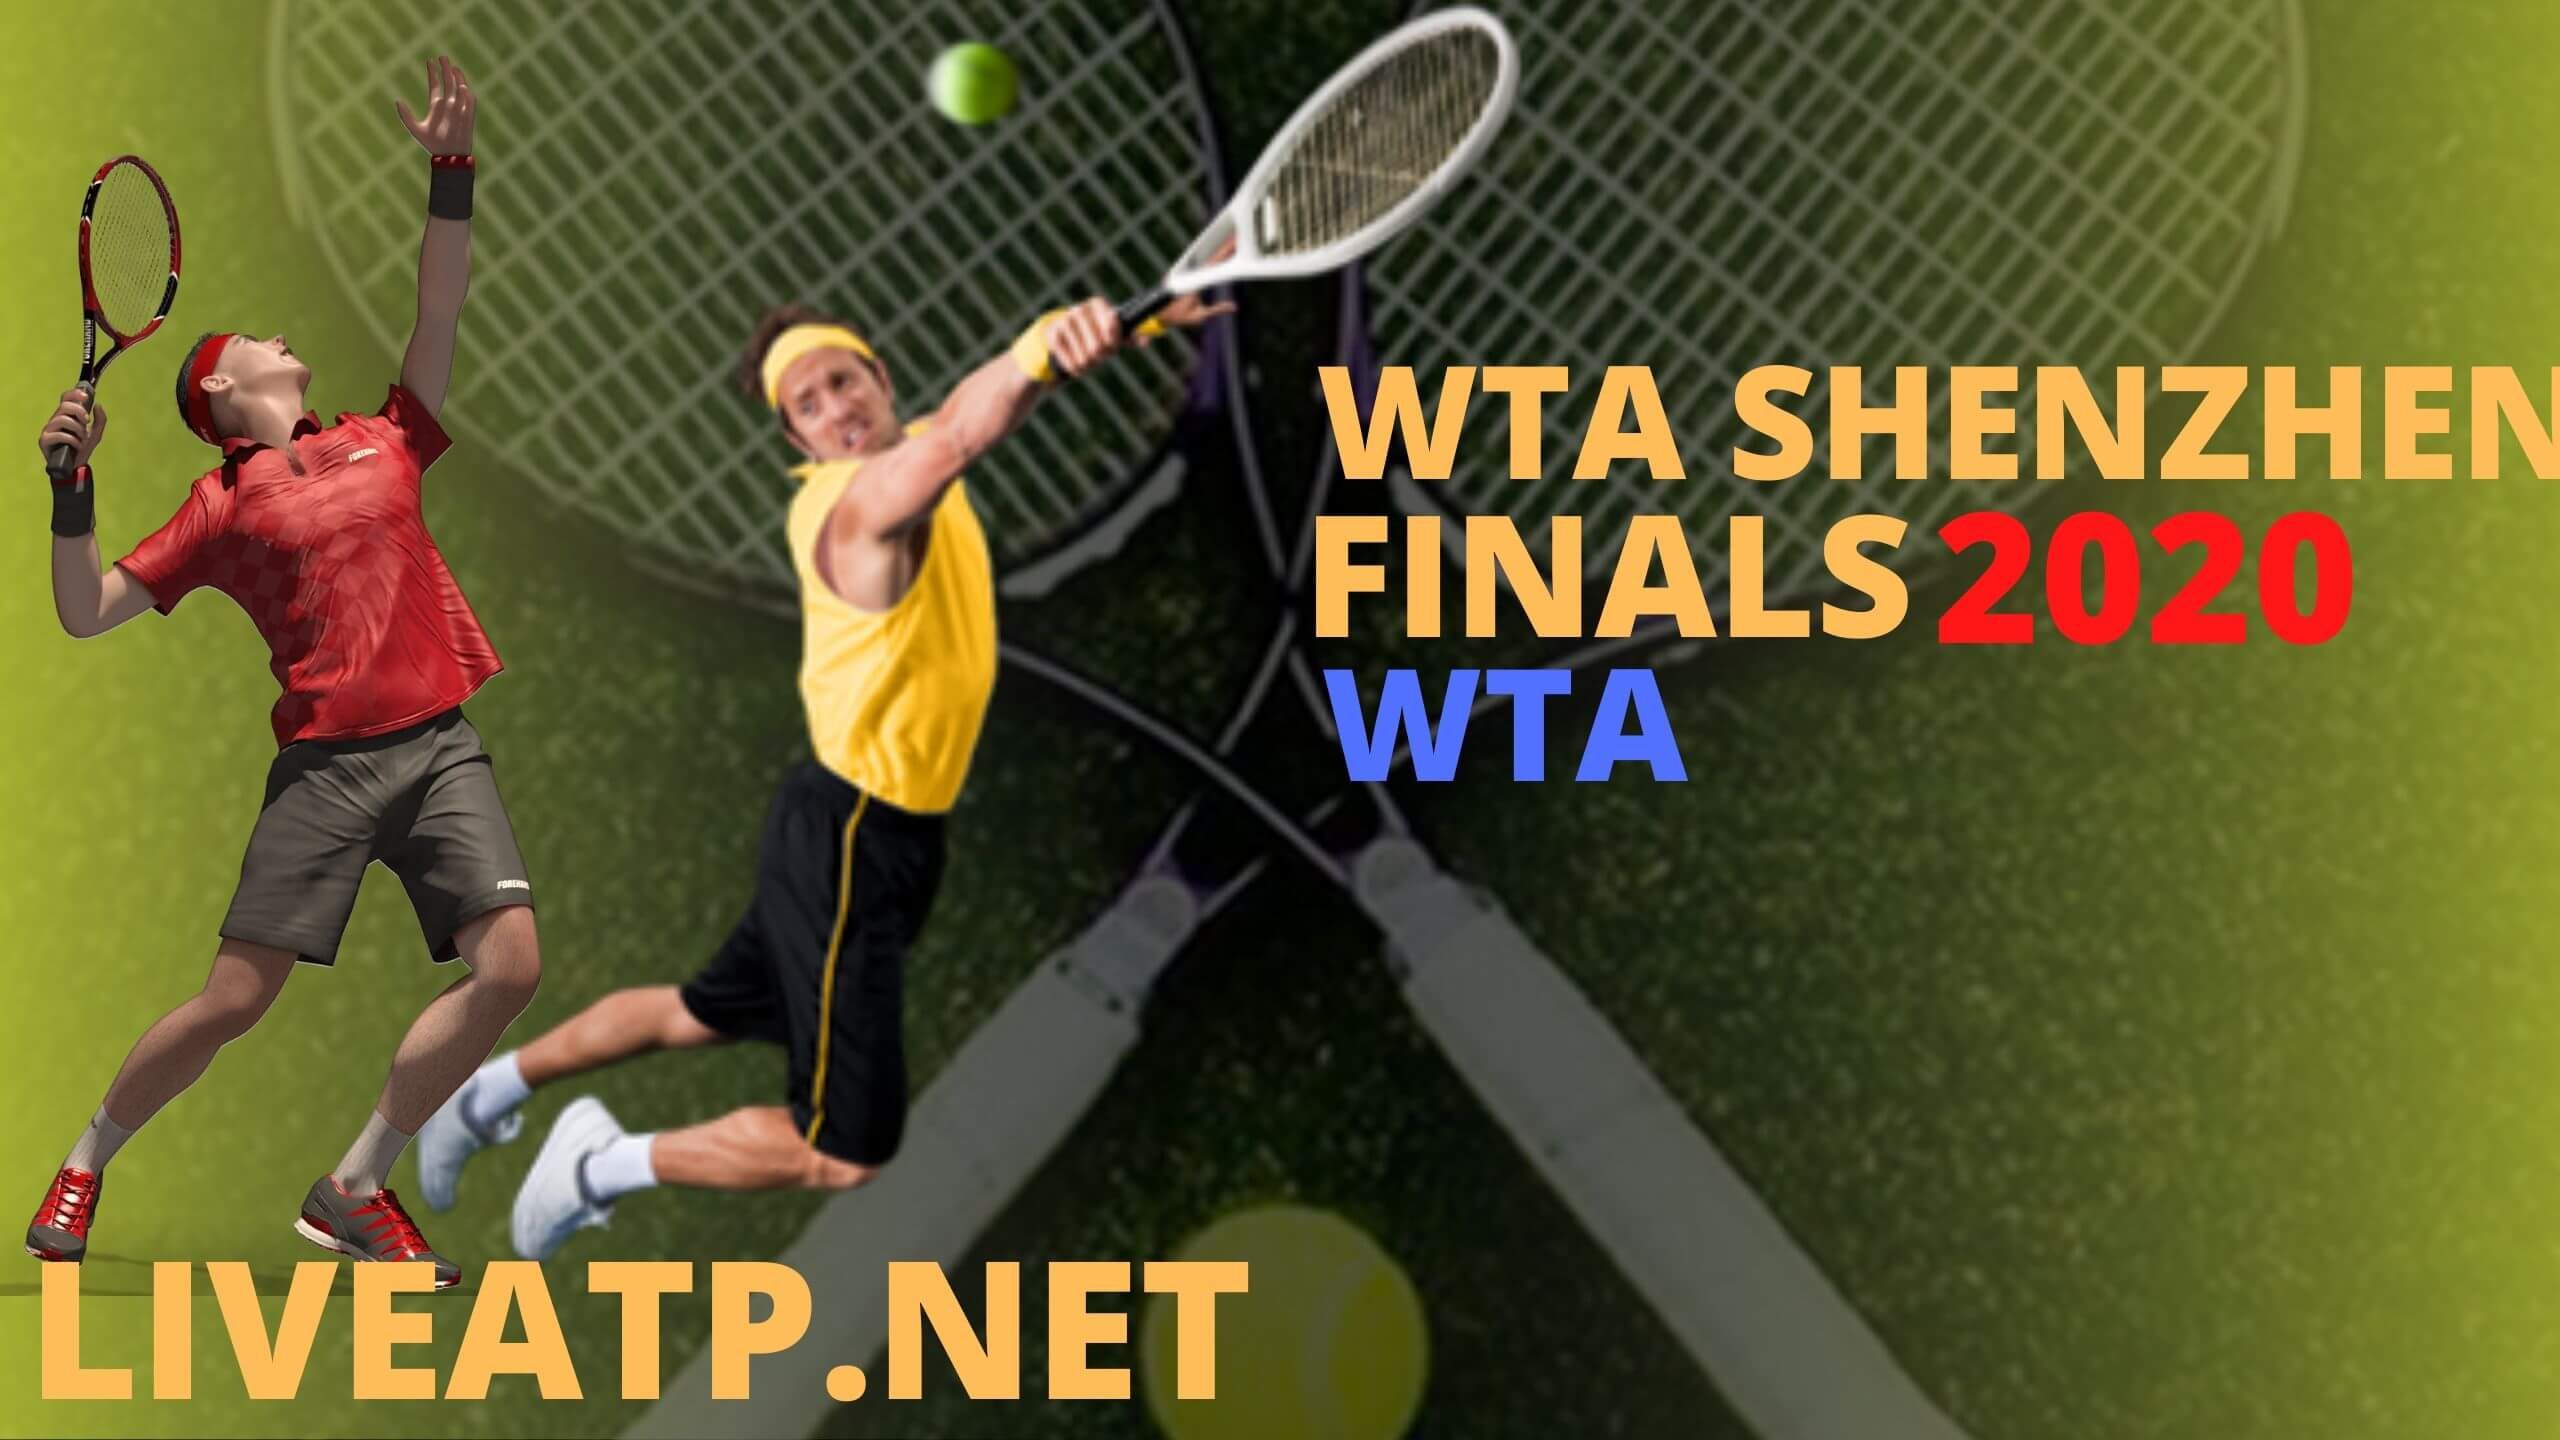 WTA Shenzhen FINALS Live Stream 2020 | Final